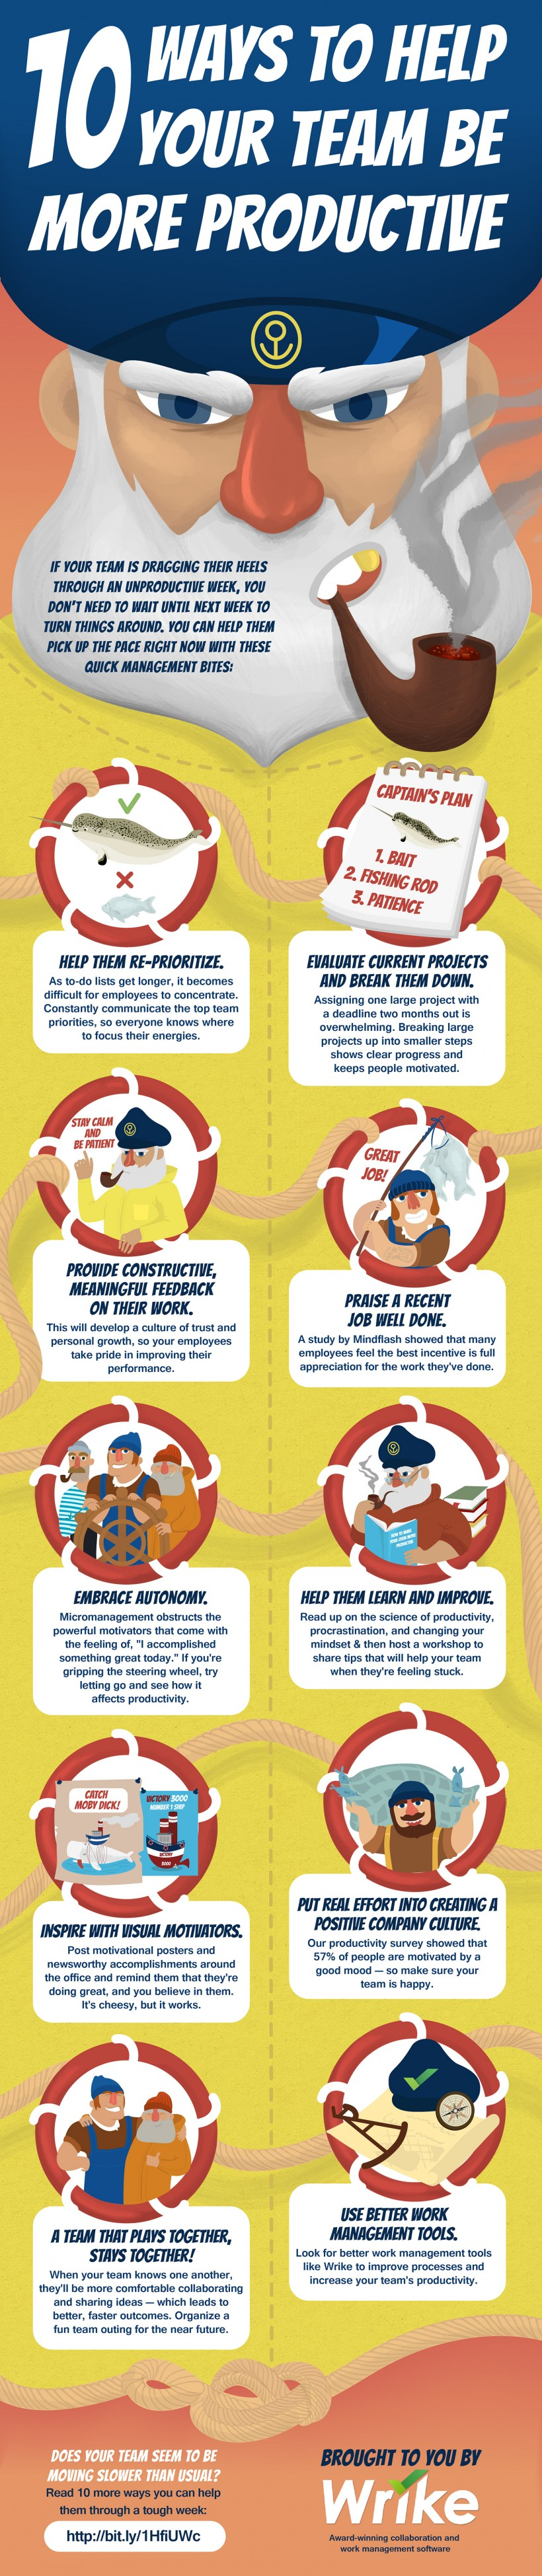 10 Ways to Make Your Team More Productive (Infographic)